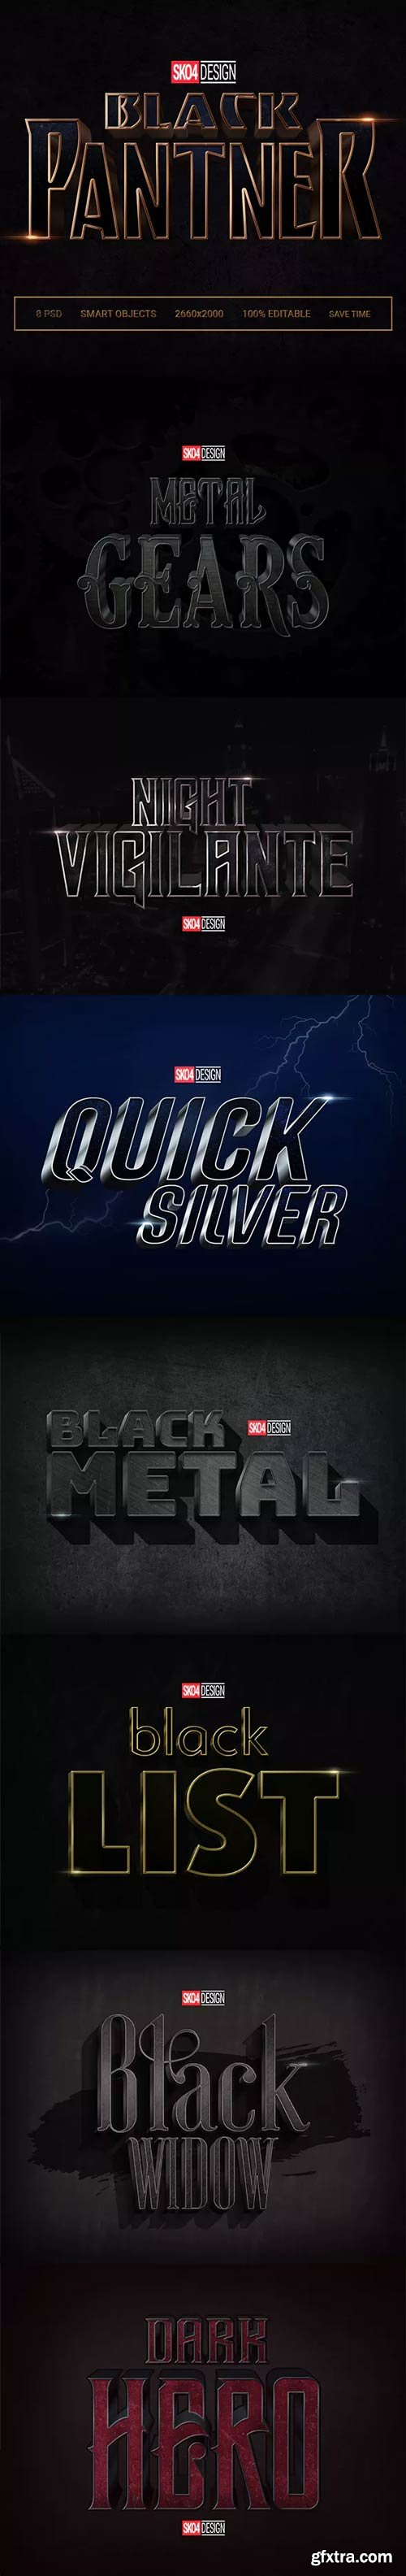 GraphicRiver - Black & Metal 3D - 8 PSD Cinematic Effects - 21579653